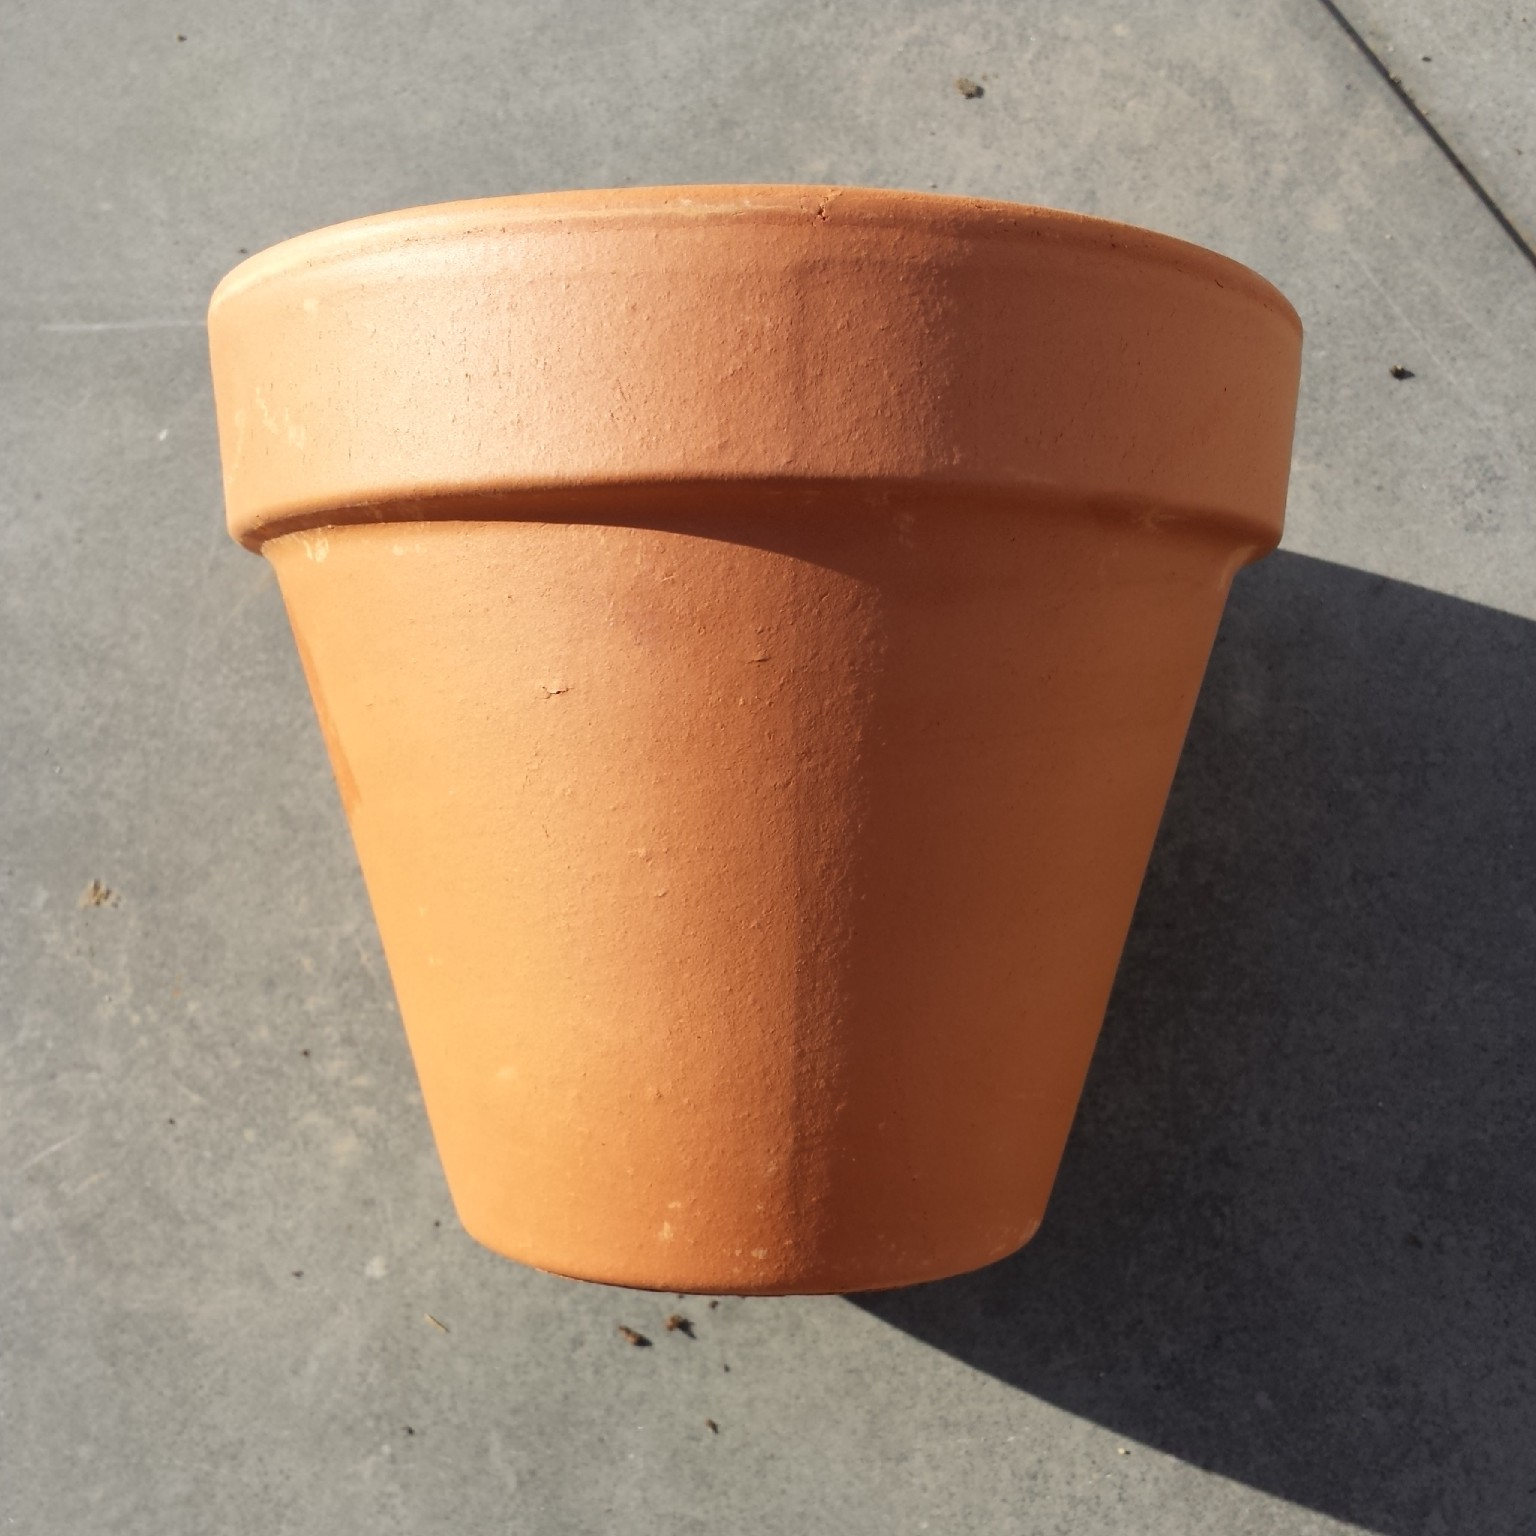 I bought three of these terracotta pots...